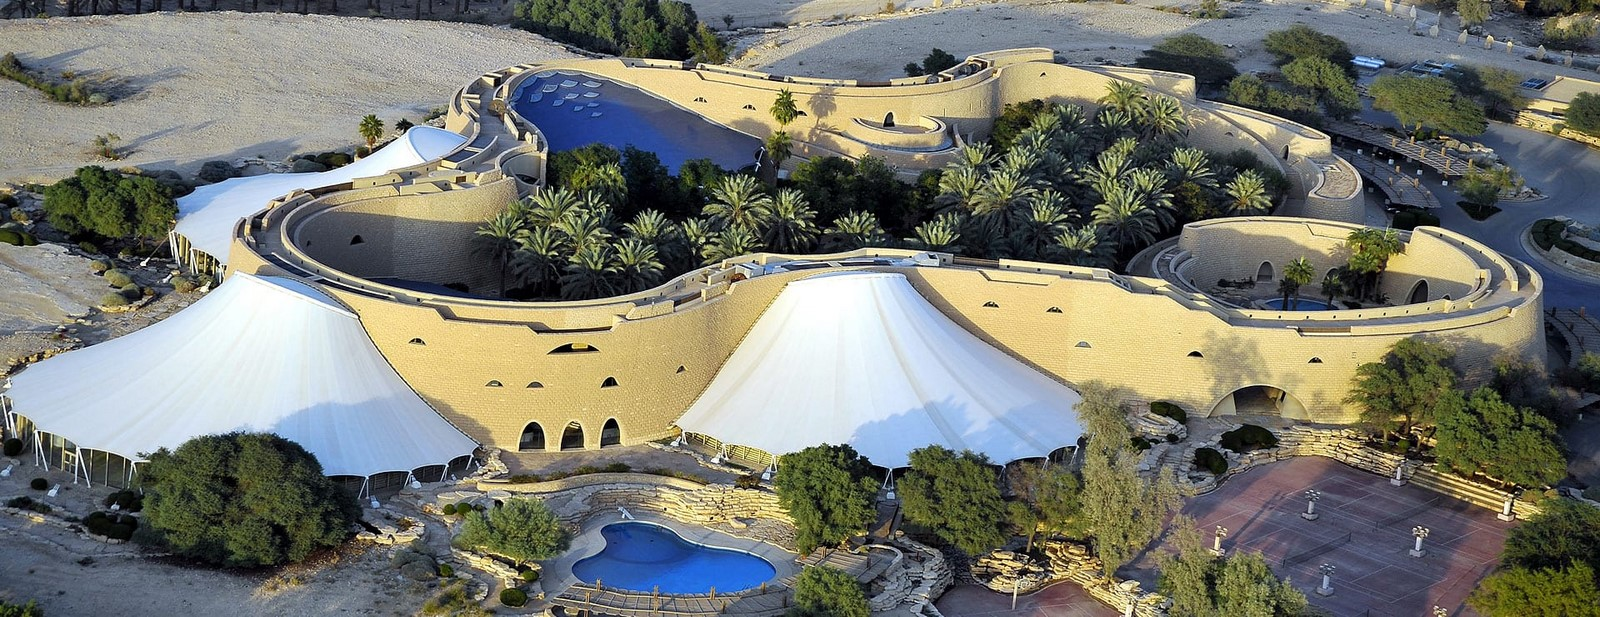 The Tuwaiq Palace by Frei Otto: Pearls in the desert - Sheet8